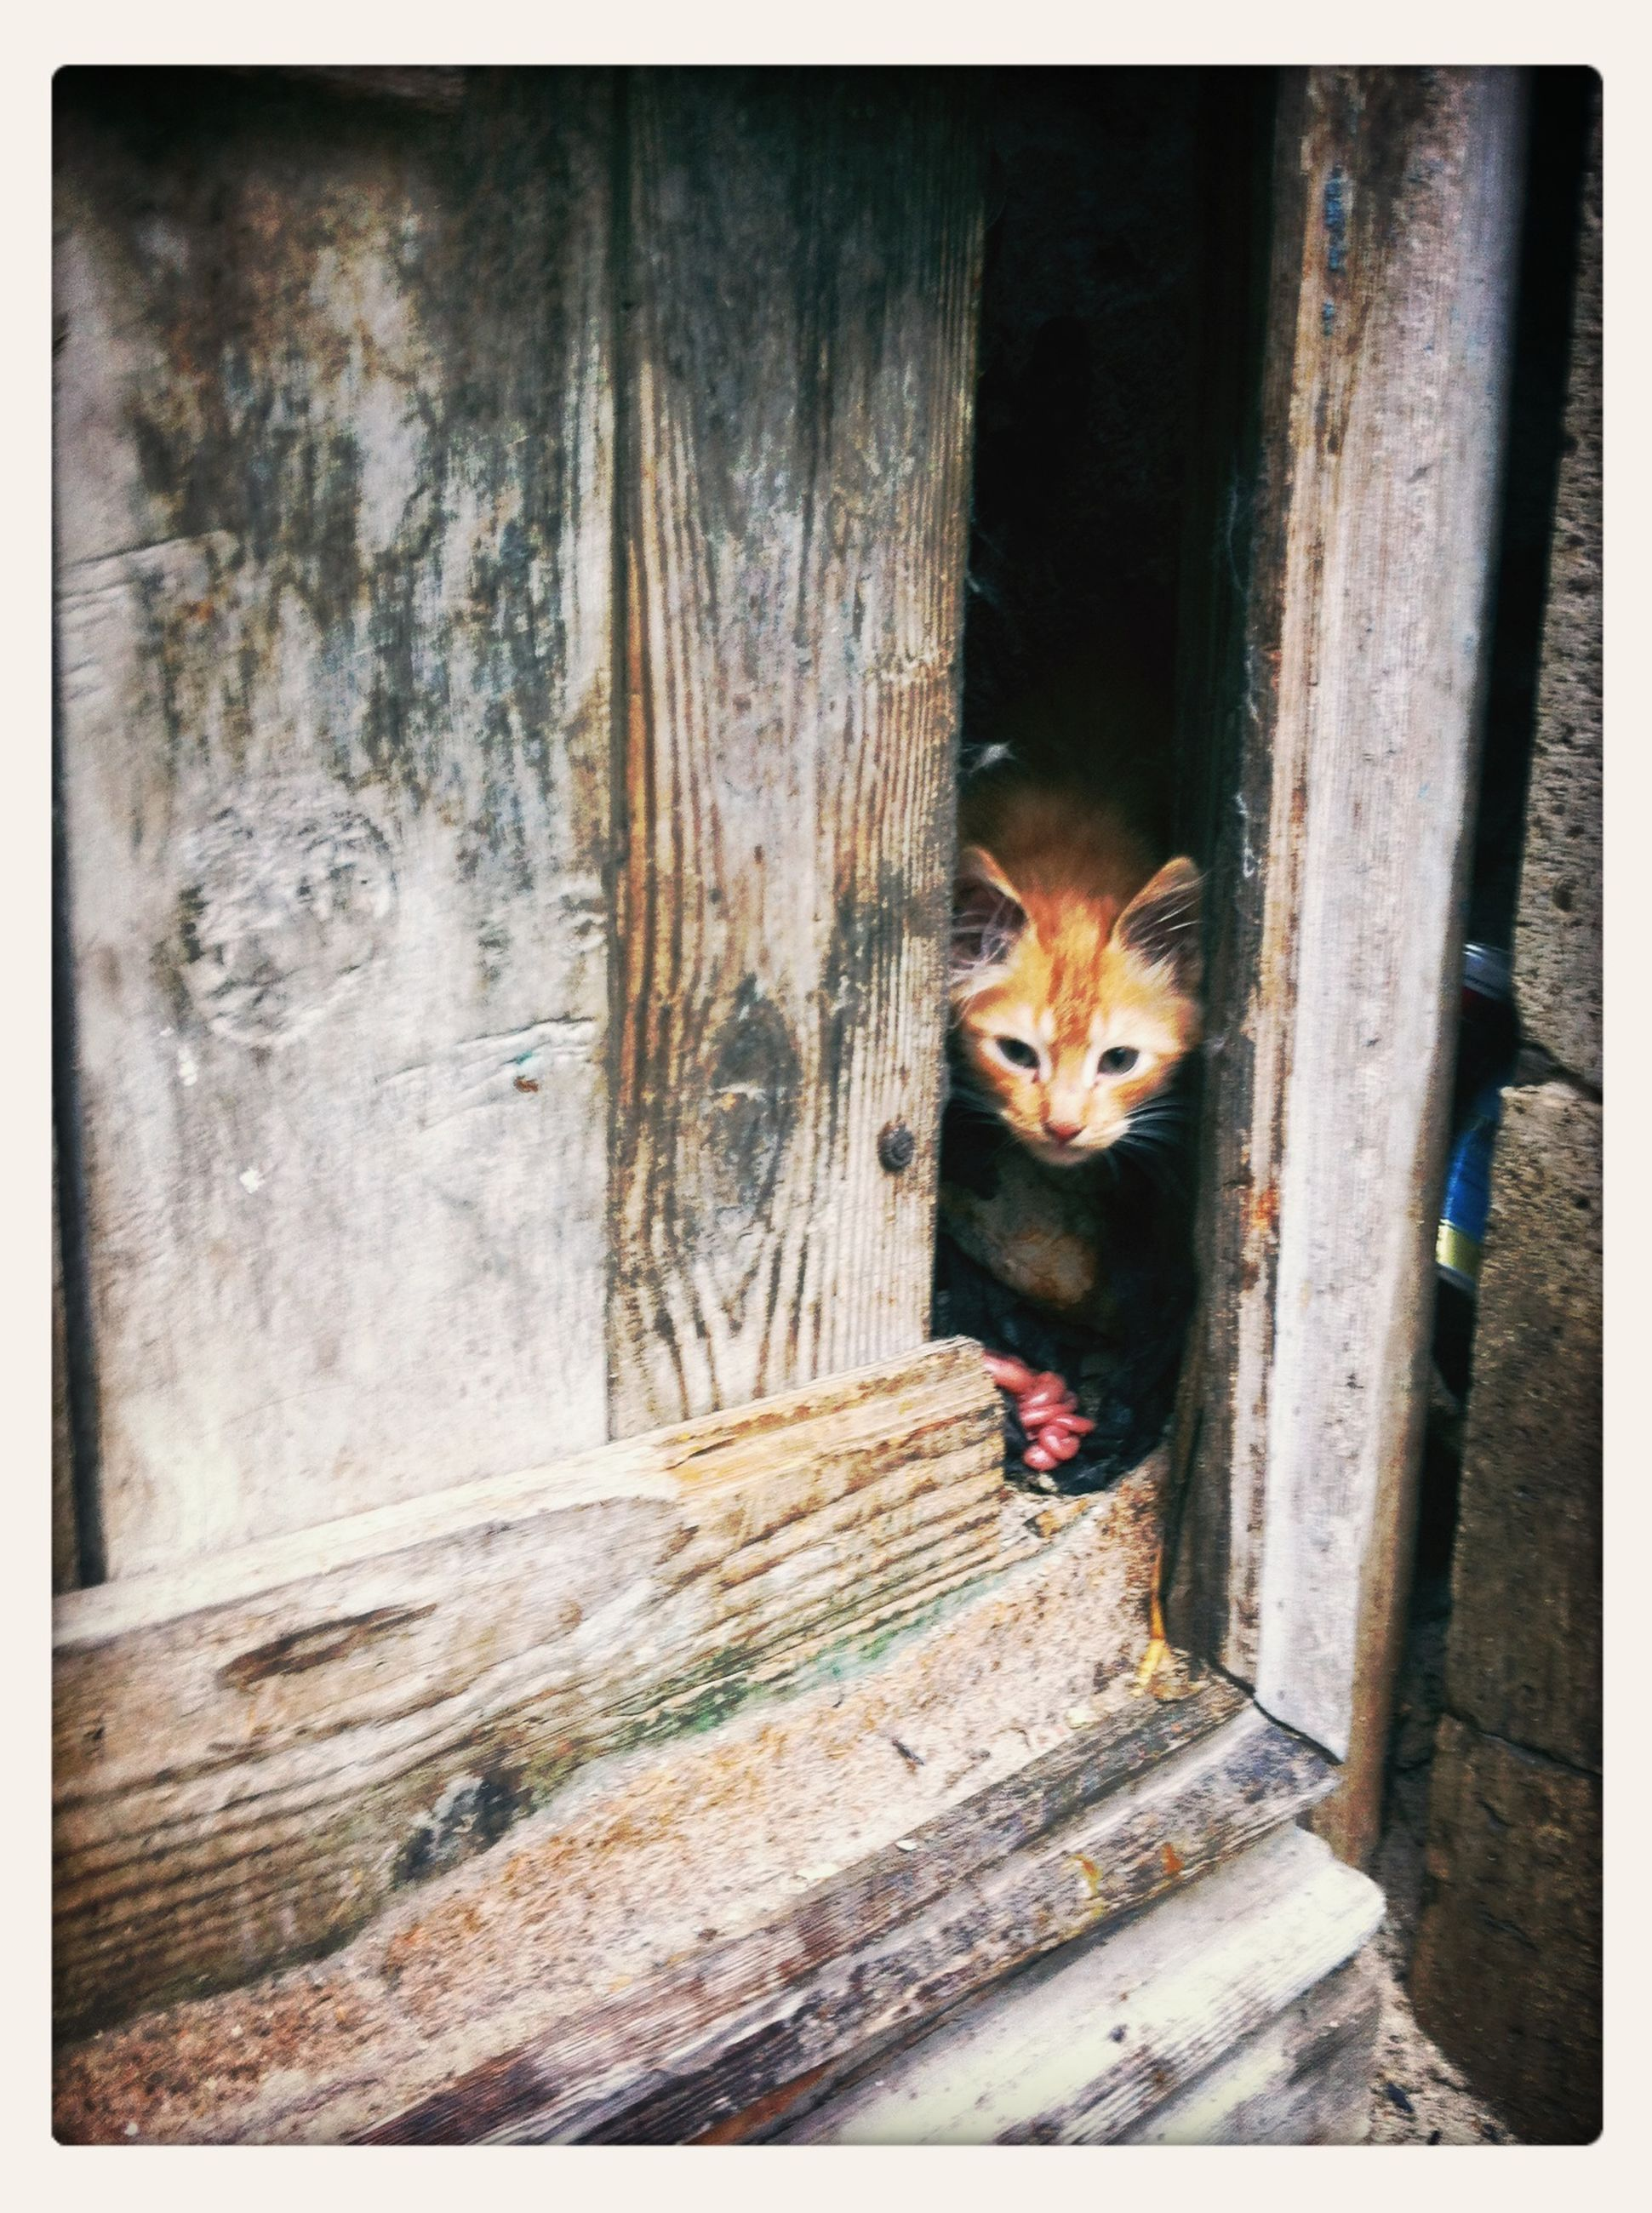 animal themes, one animal, wood - material, mammal, domestic animals, wooden, door, wildlife, pets, animals in the wild, wood, cat, domestic cat, feline, outdoors, plank, house, sitting, day, fence